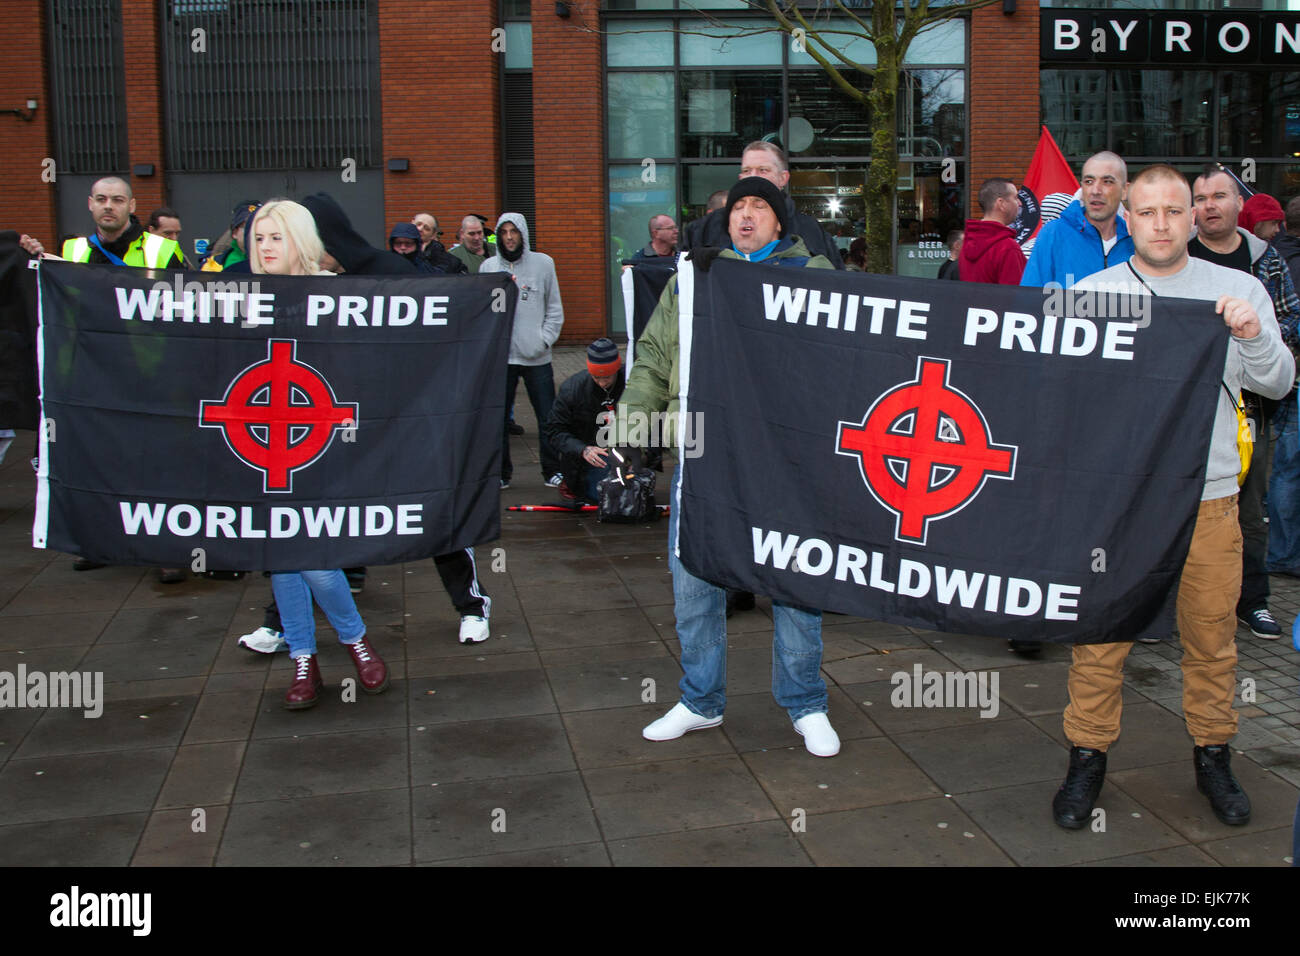 Manchester, UK 28th March, 2015. Demonstrators at the National Front neo-nazi rally & White Pride Worldwide Demo Stock Photo